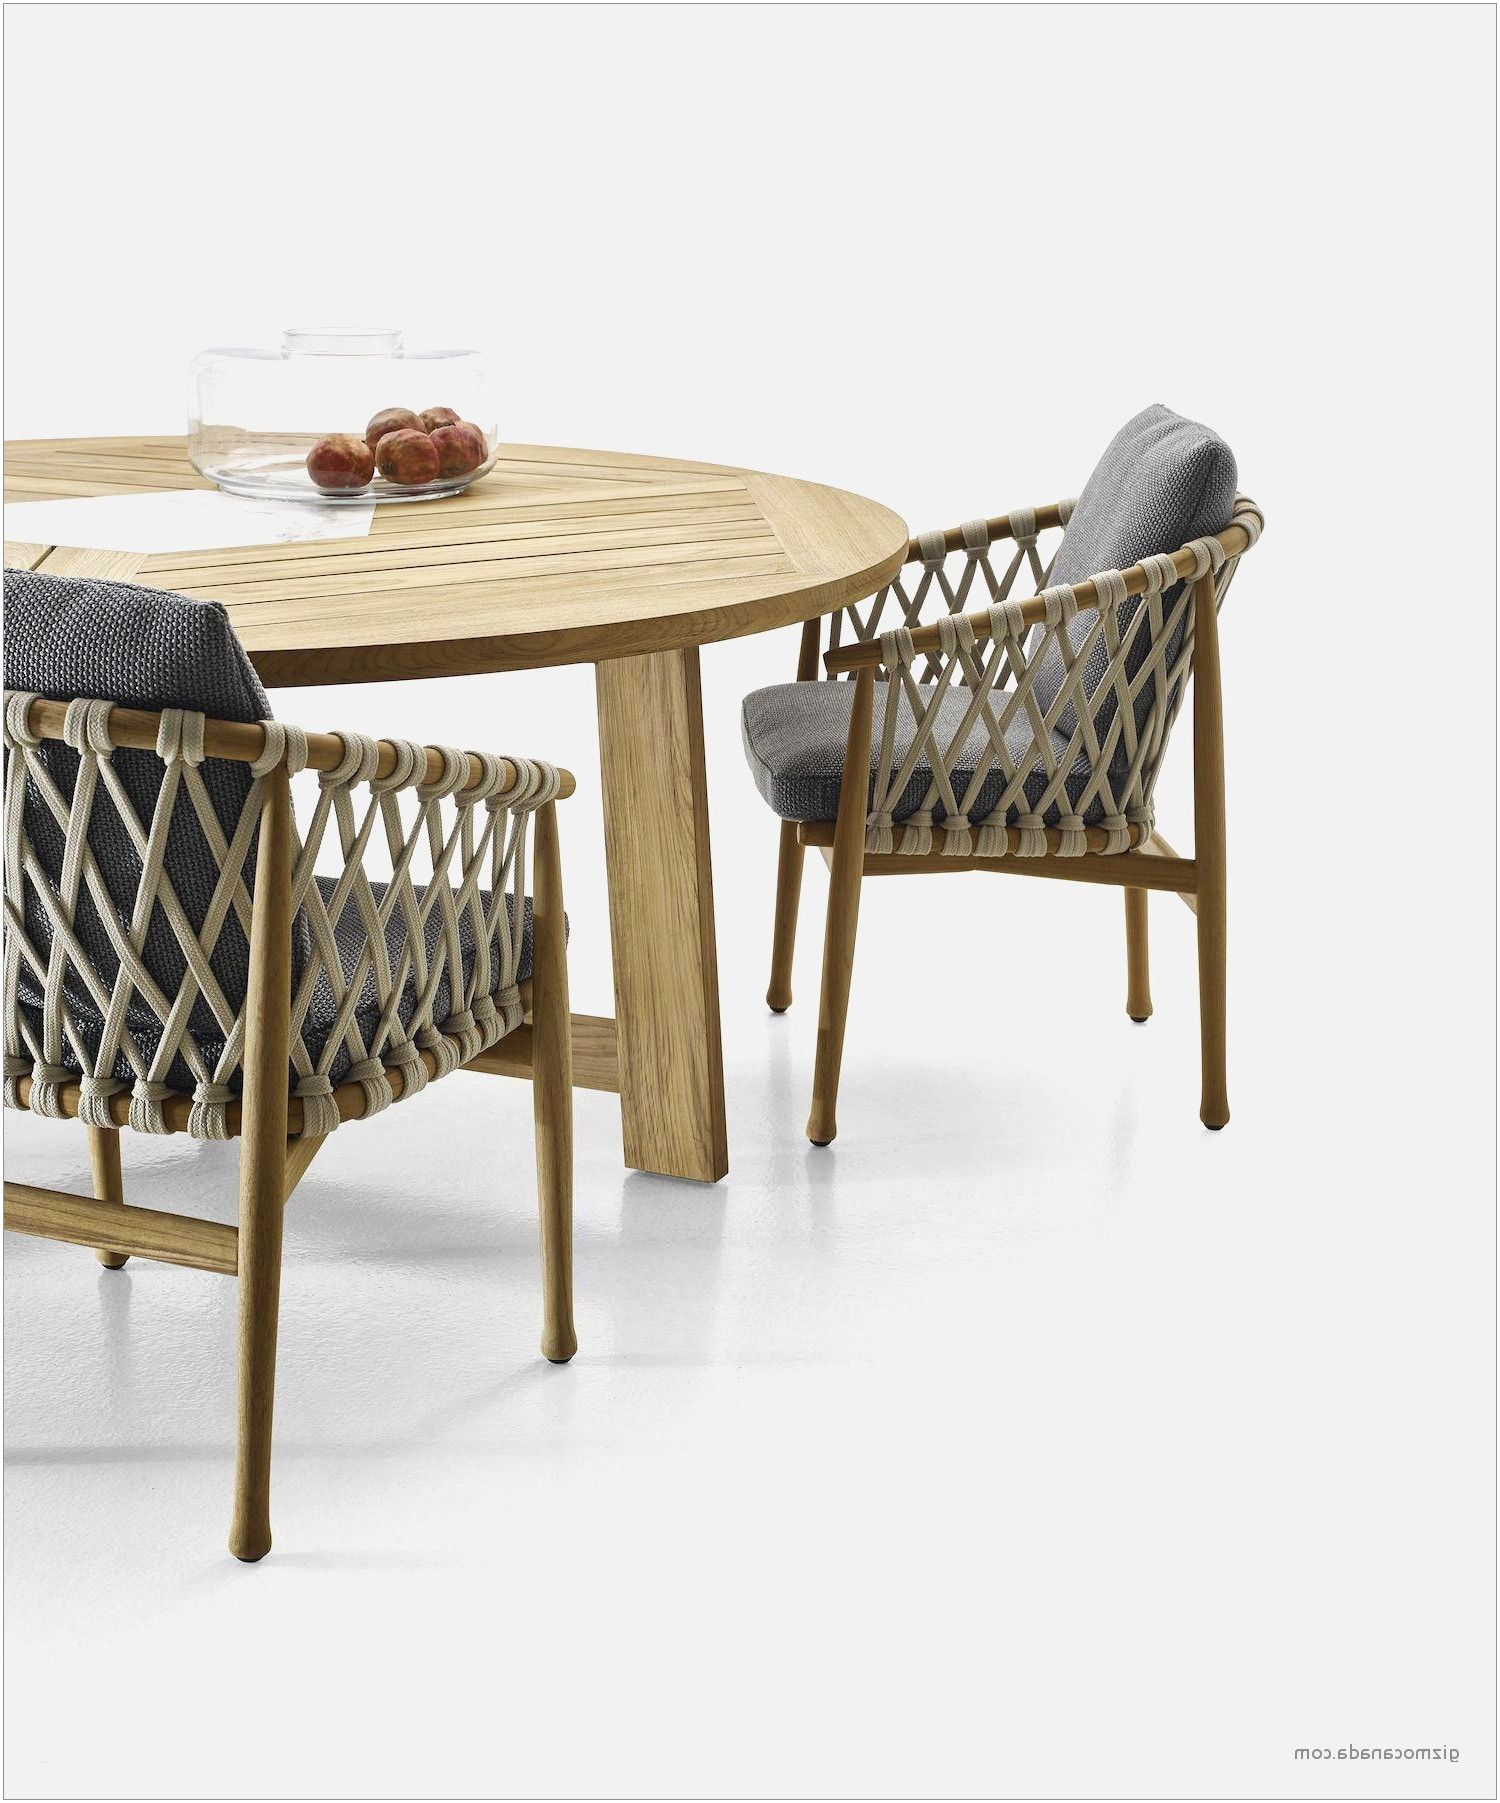 design boardroom bedroom dining accent furniture latest ideas small tures chairs for living jumia room designs catalogue sitting drawing waiting spaces full size bar height table